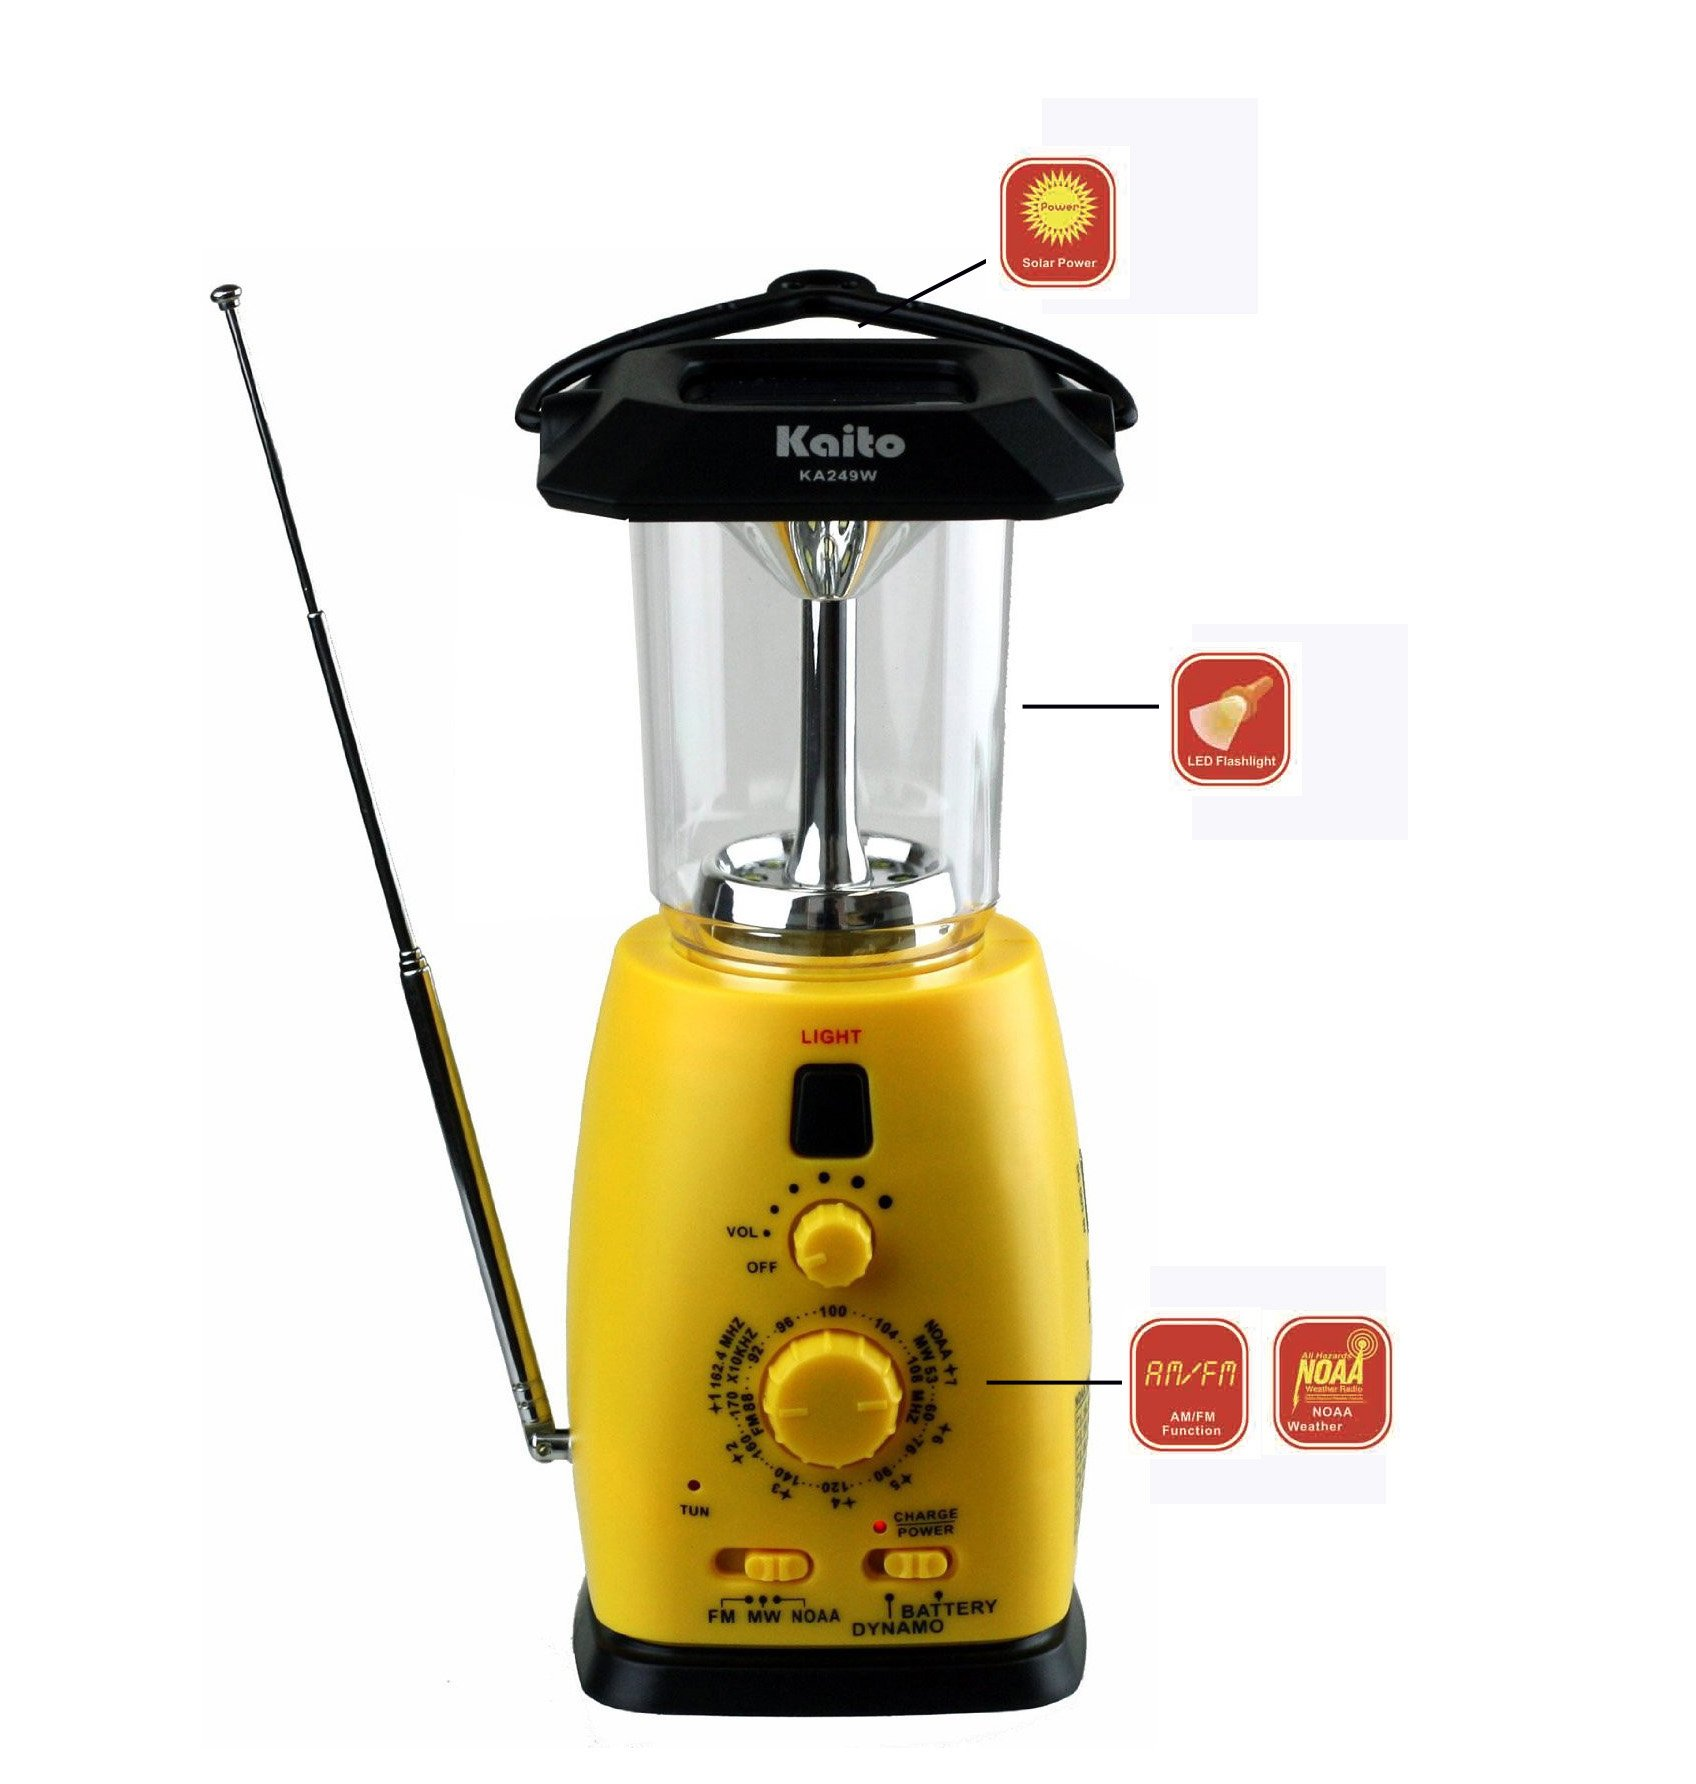 Kaito KA249W Multi-Functional 4-Way Powered LED Camping Lantern with AM/FM NOAA Weather Radio & Cell Phone Charger